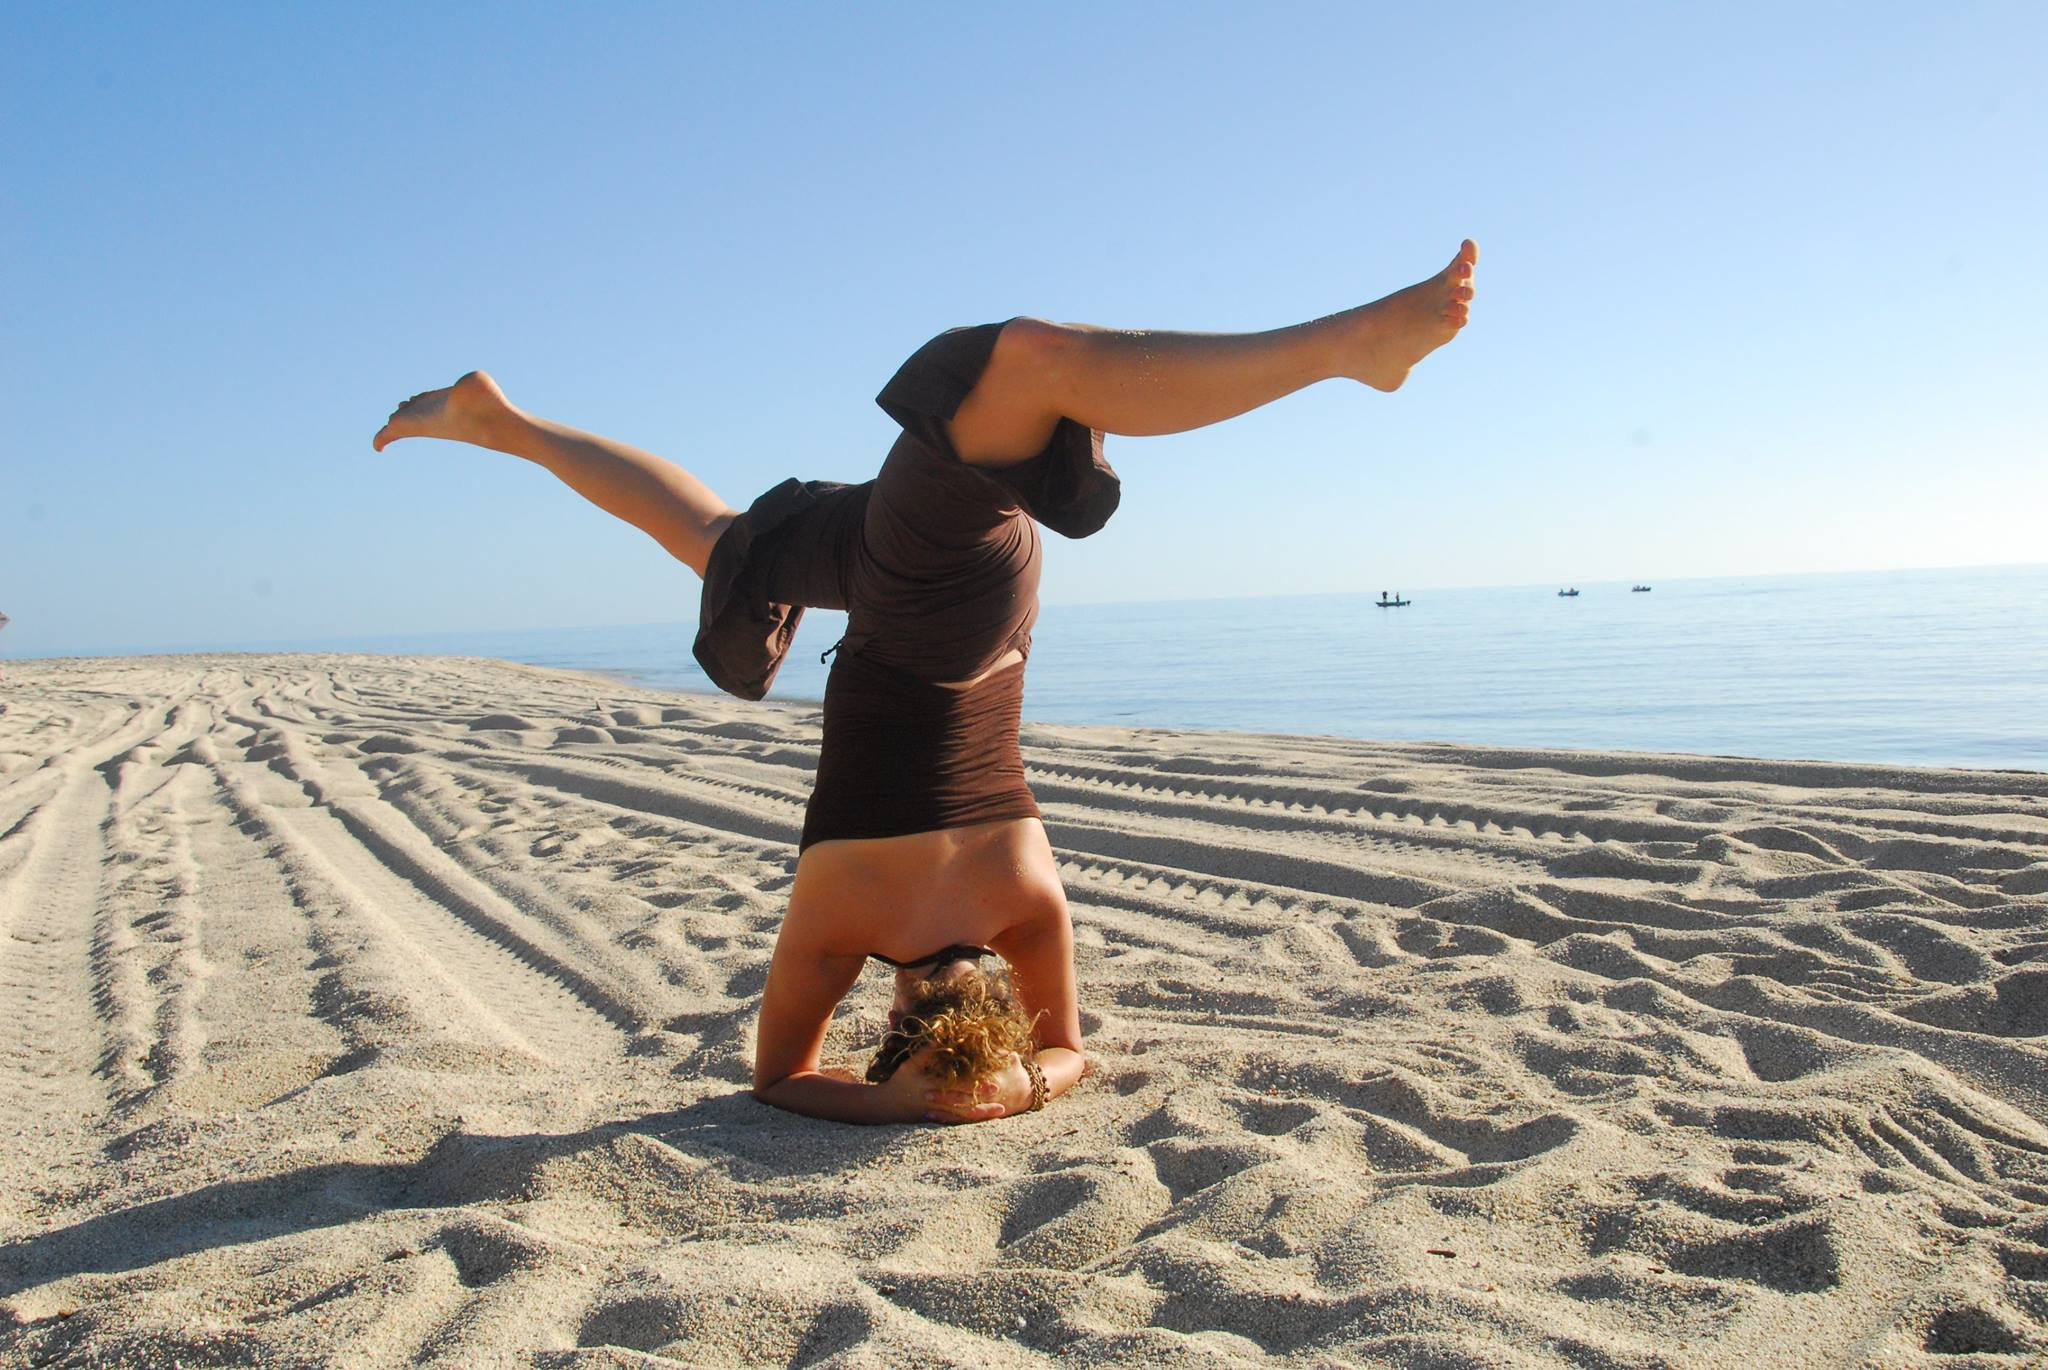 Special week Fall Yoga Beach Retreat Weekend with Carson Efird + Hayley Hedges from EVOLVE Movement